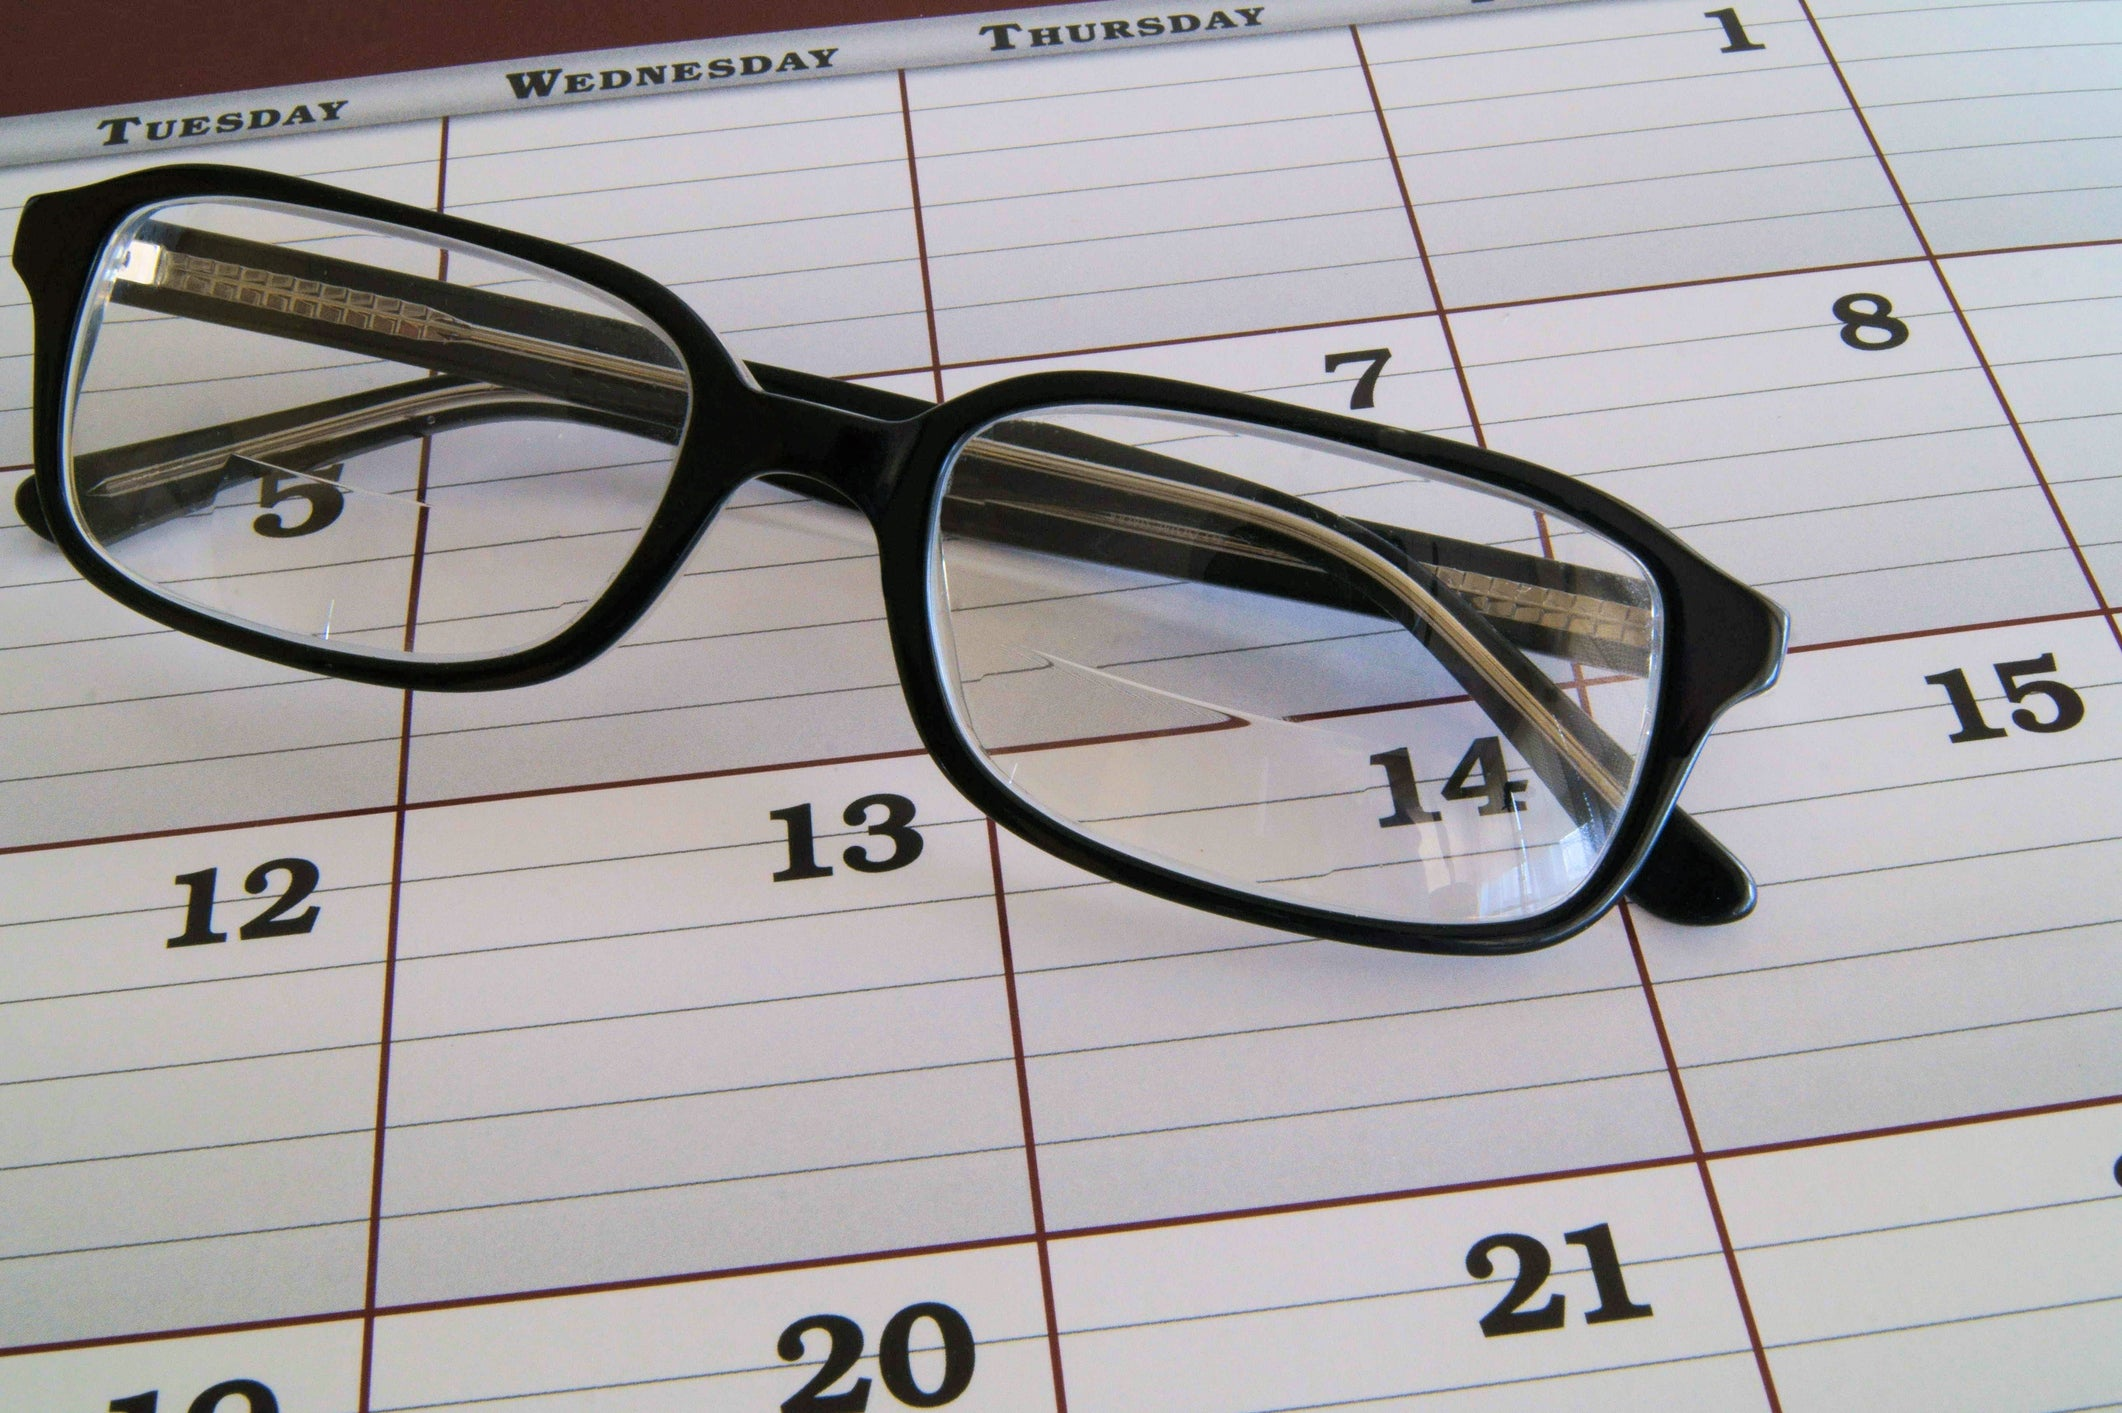 Bifocal Reading Glasses vs. Adjustable Focus: Which Are Right for You?